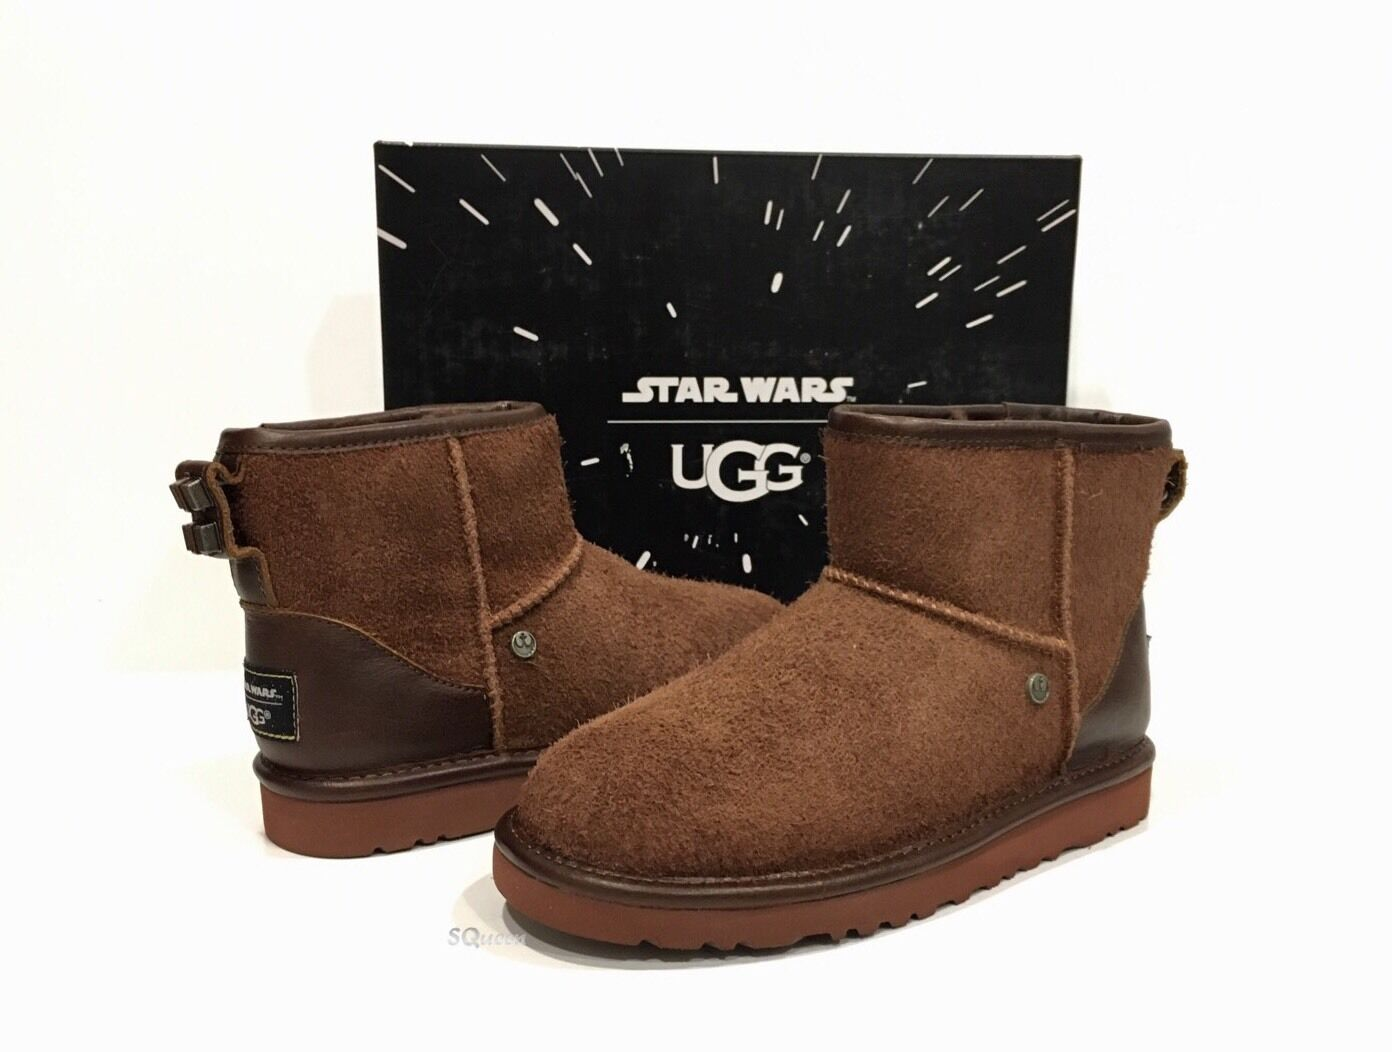 e2113684a5f Kids 2 UGG 1011717 Chewbacca Star Wars Suede Classic Mini Pull on BOOTS